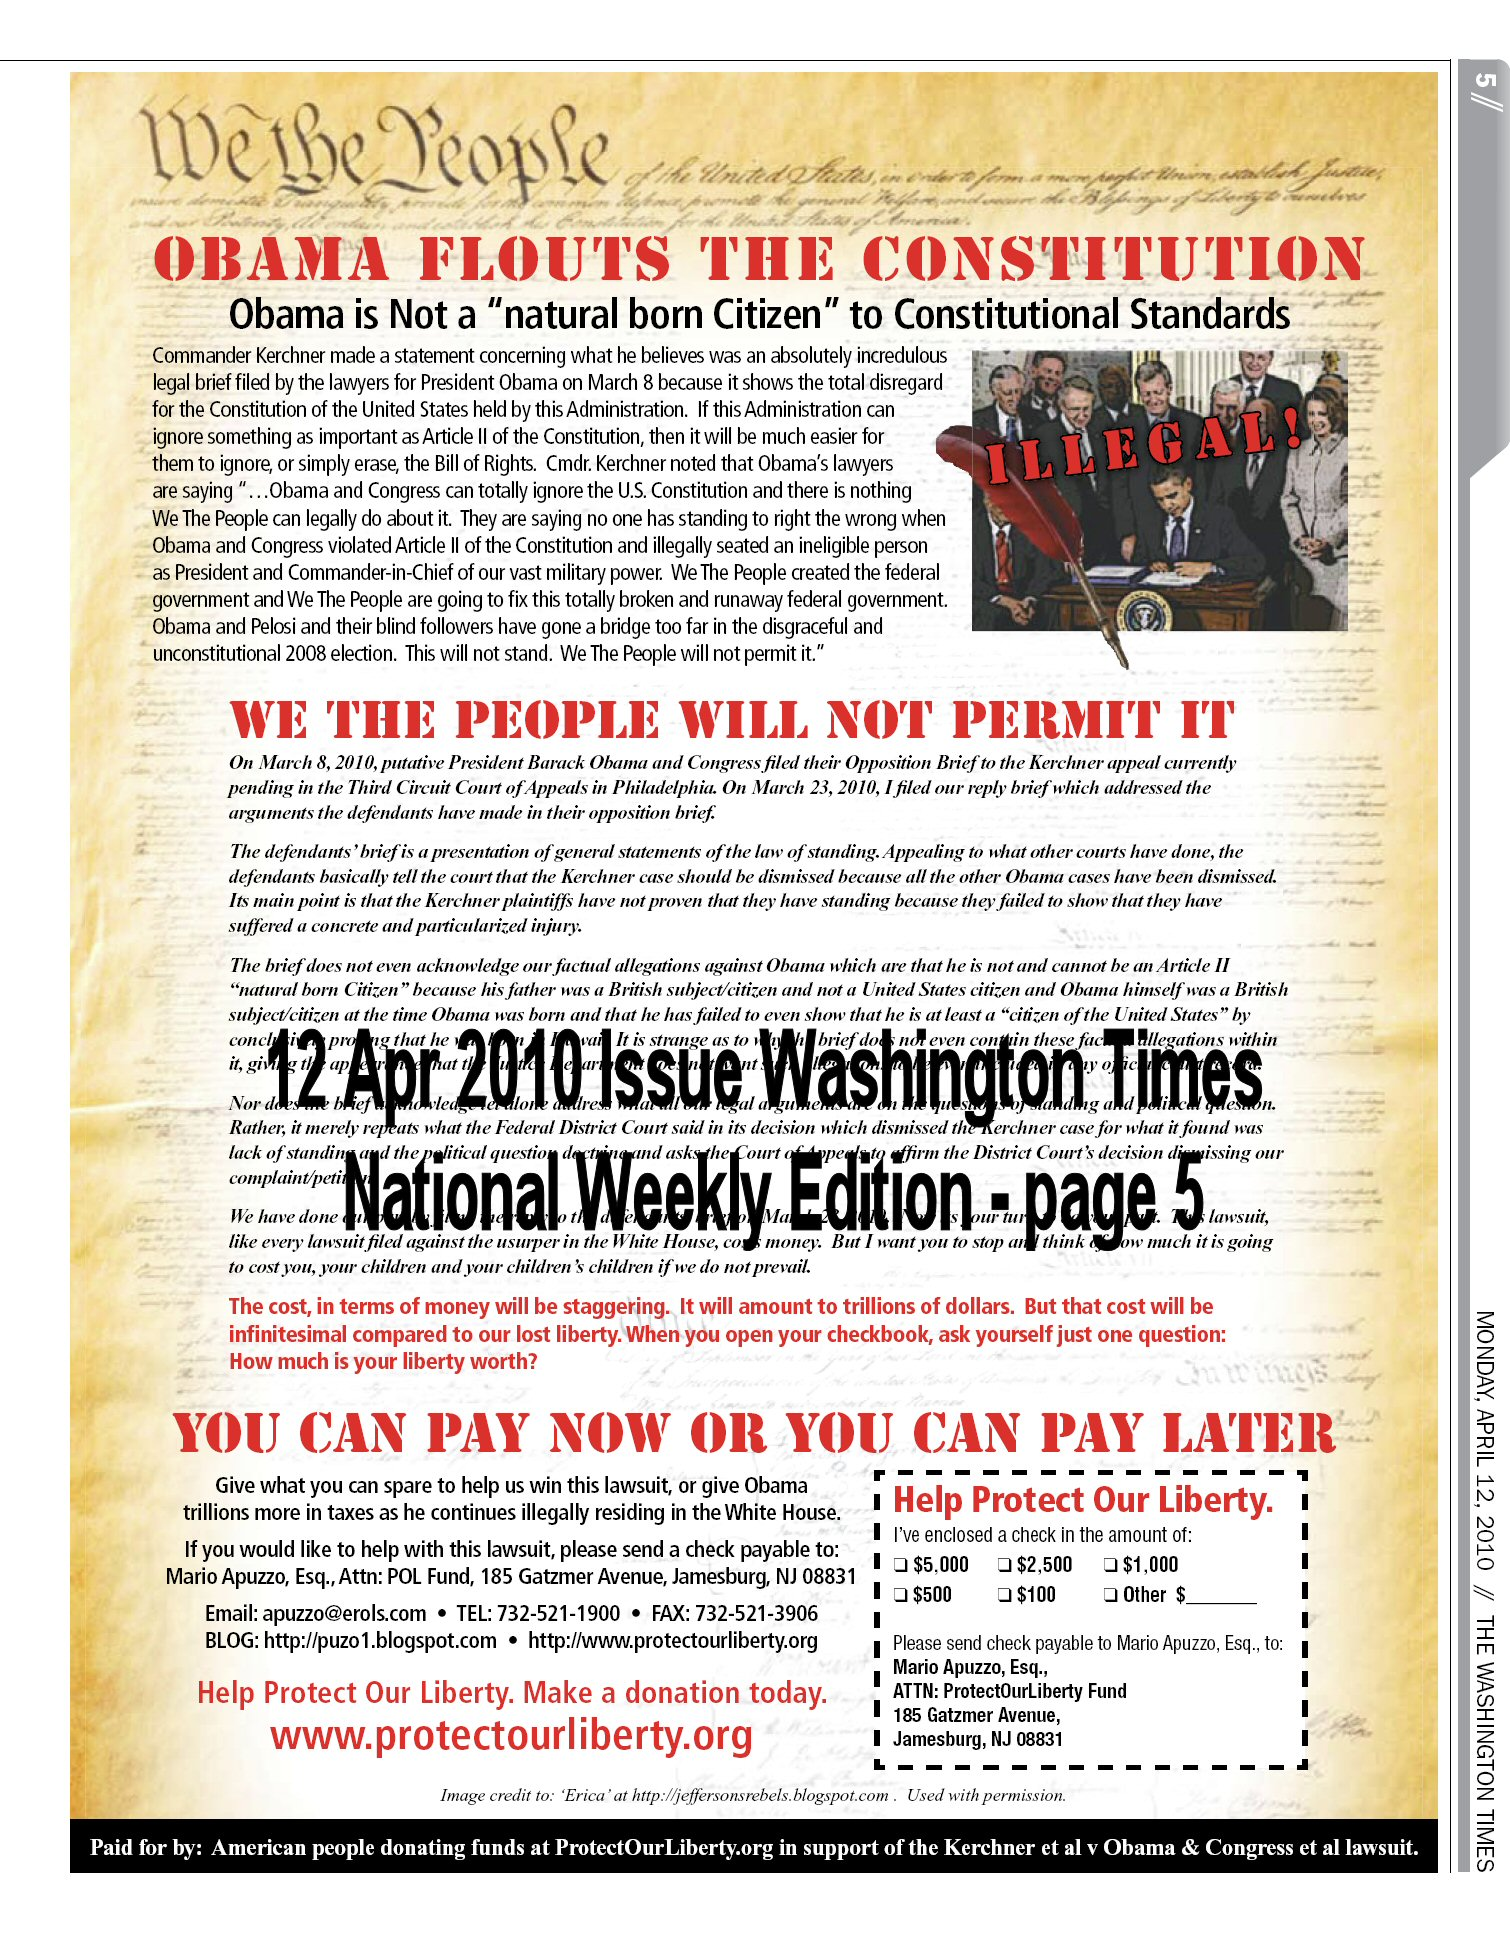 Obama Flouts the Constitution